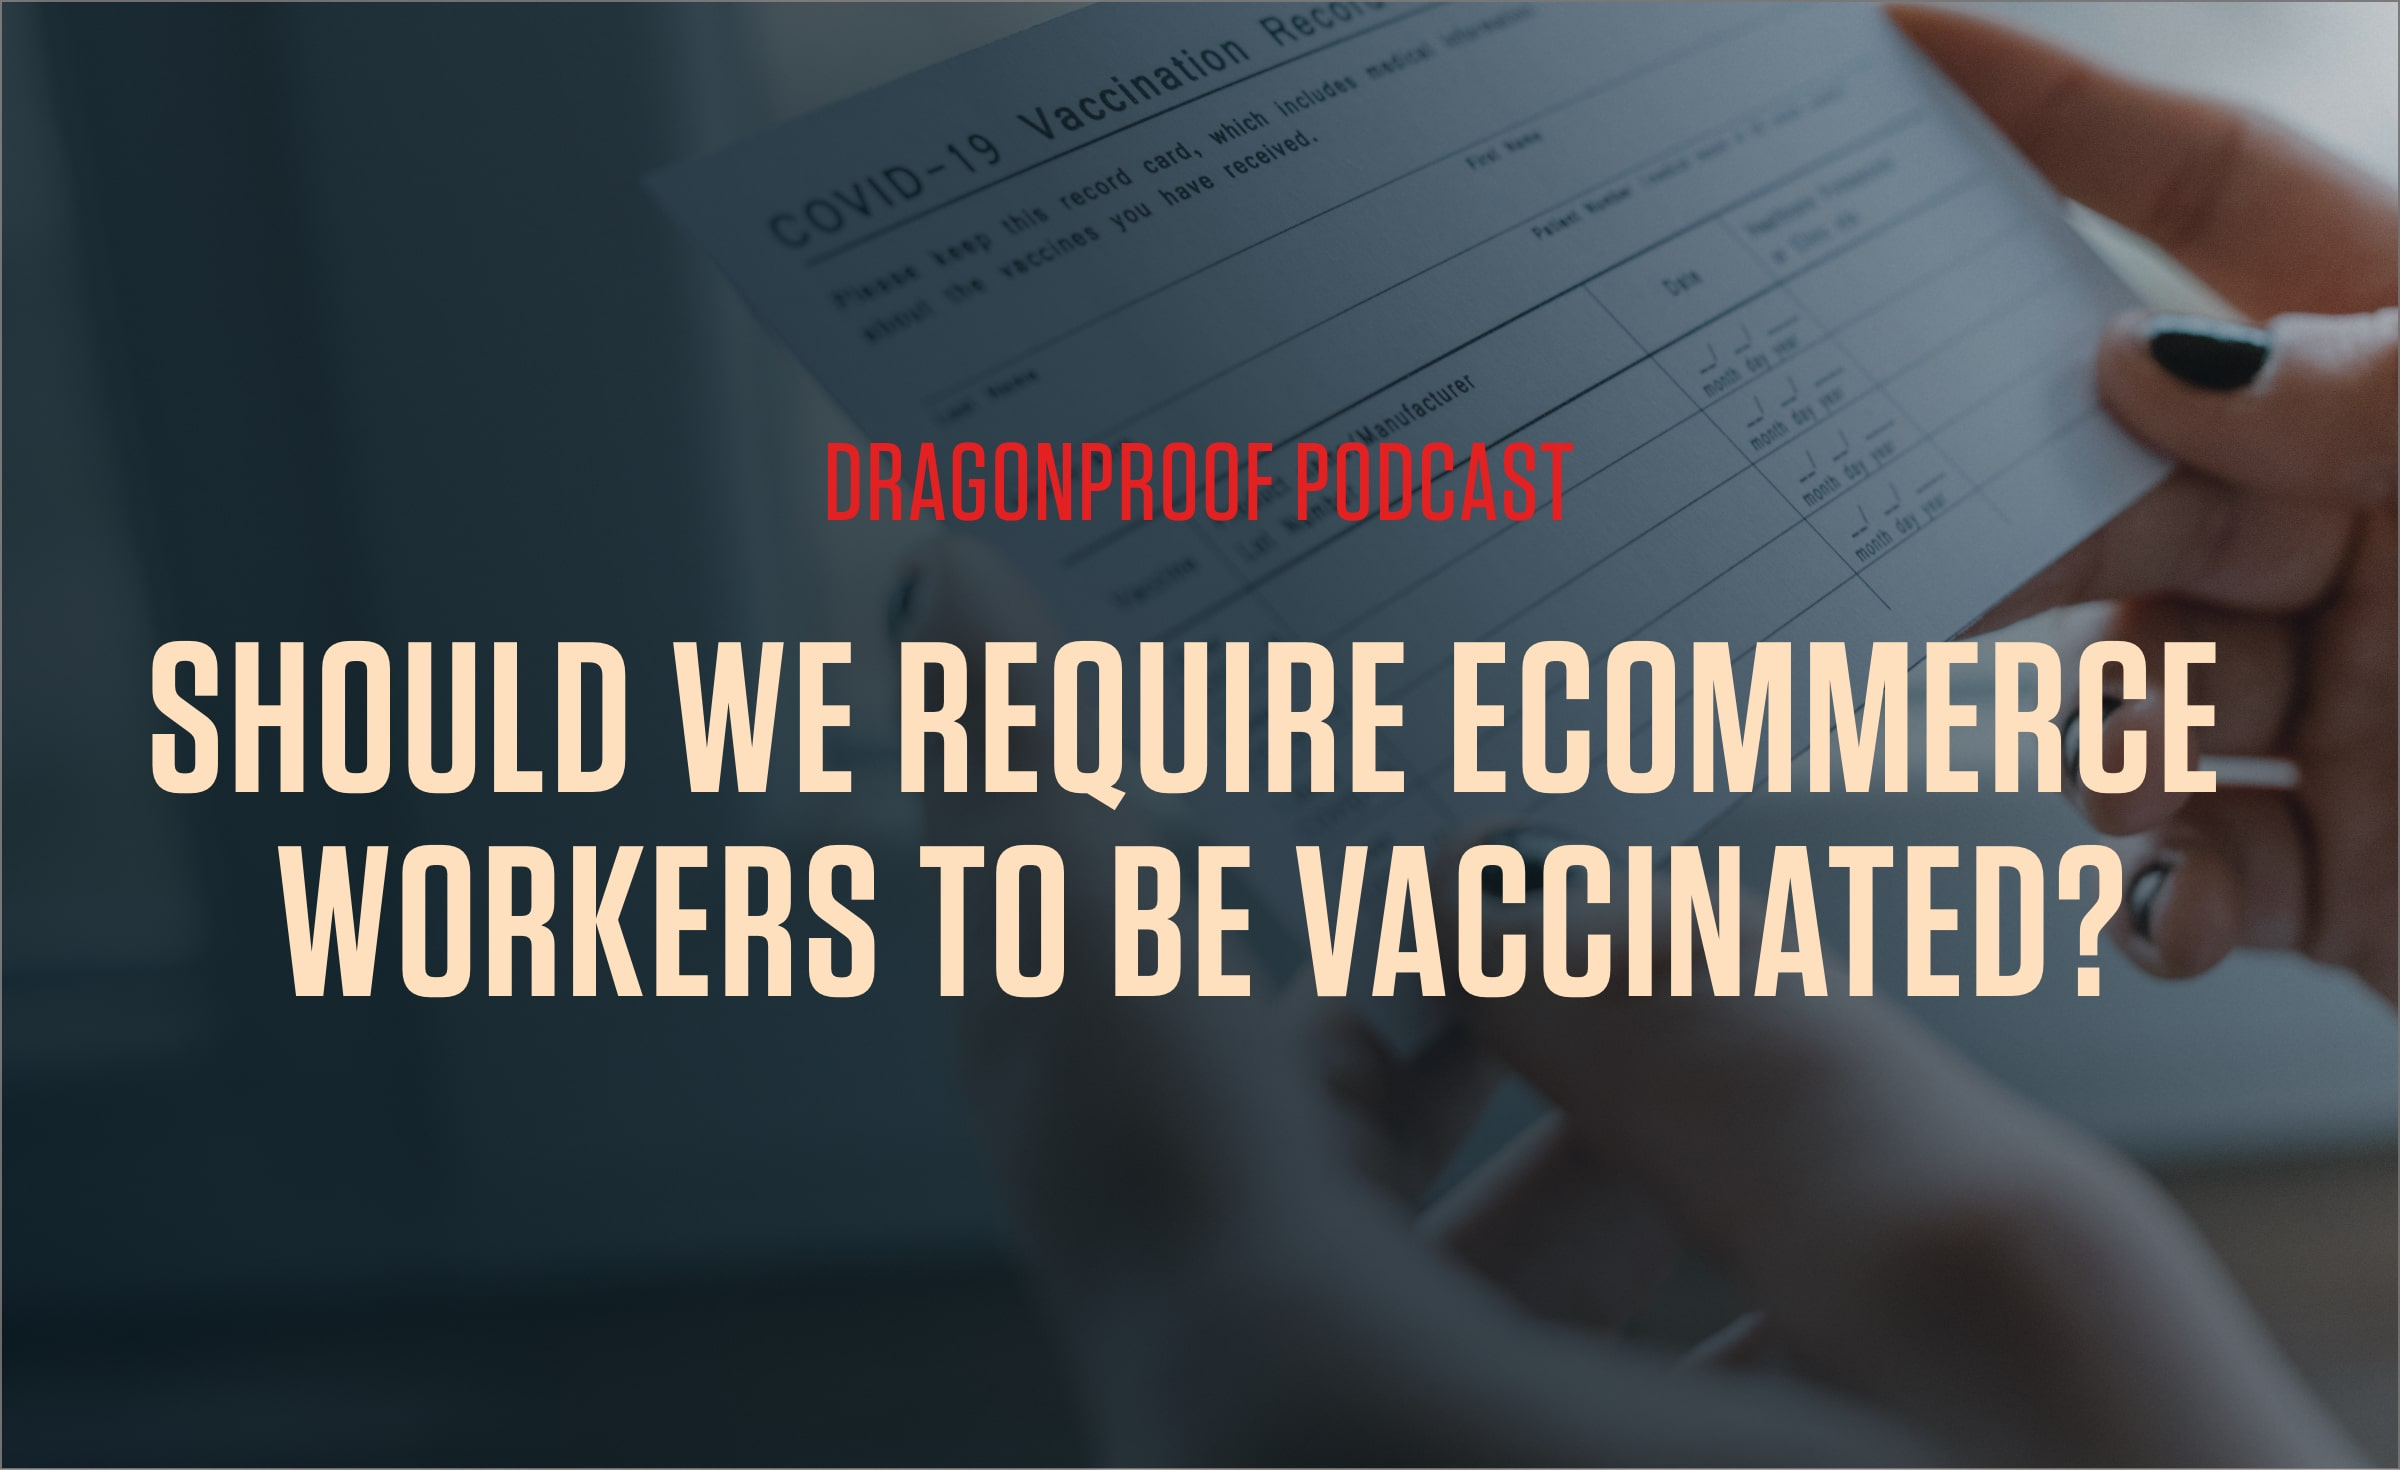 Dragonproof Podcast Title Card - Should We Require Ecommerce Workers To Be Vaccinated?